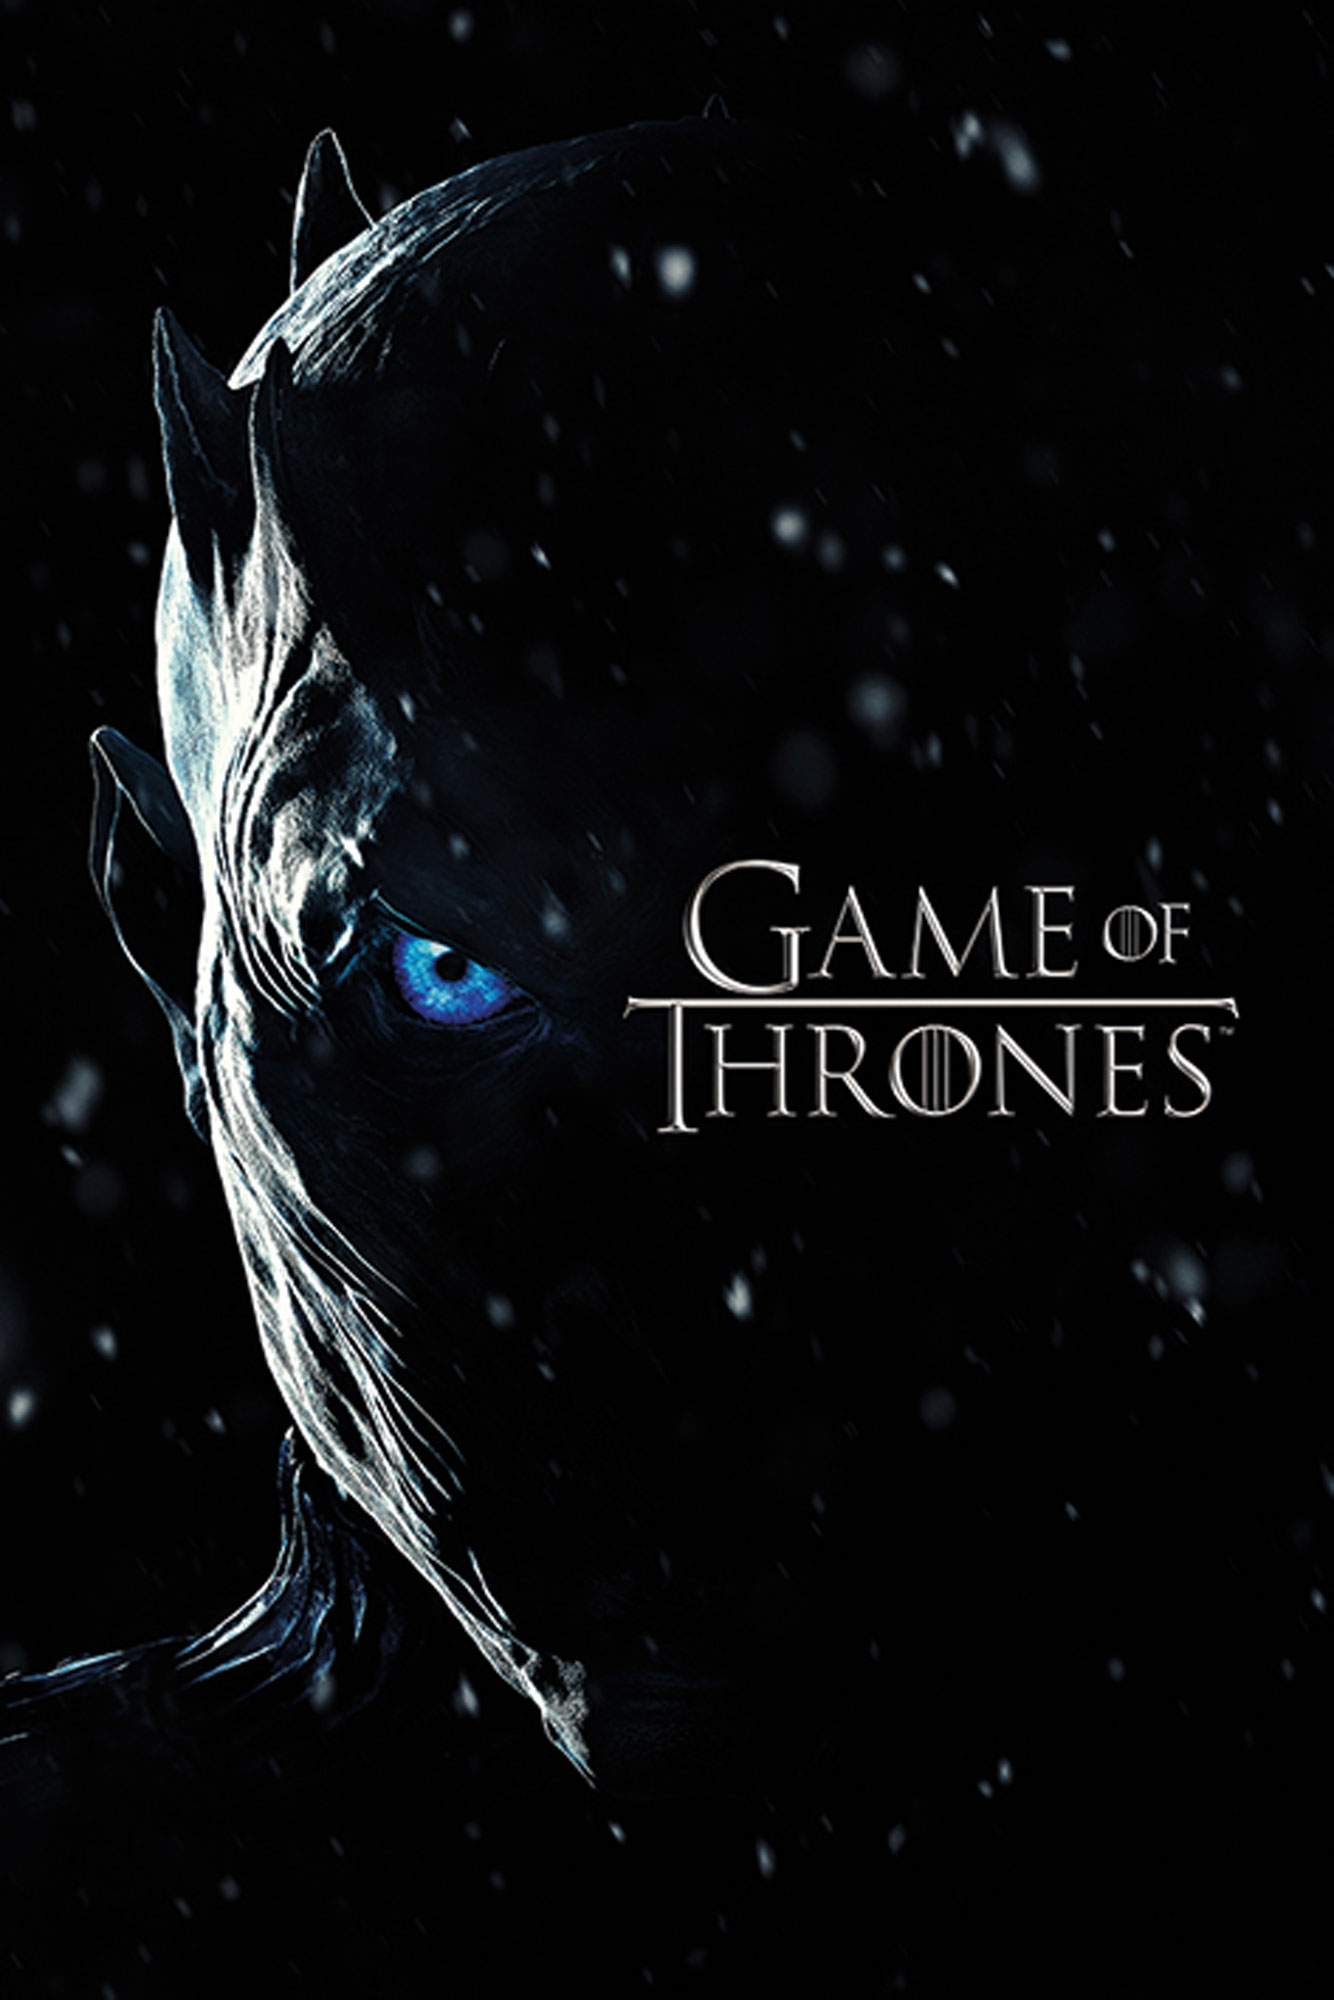 Game of Thrones - Poster - Season 7 - Night King